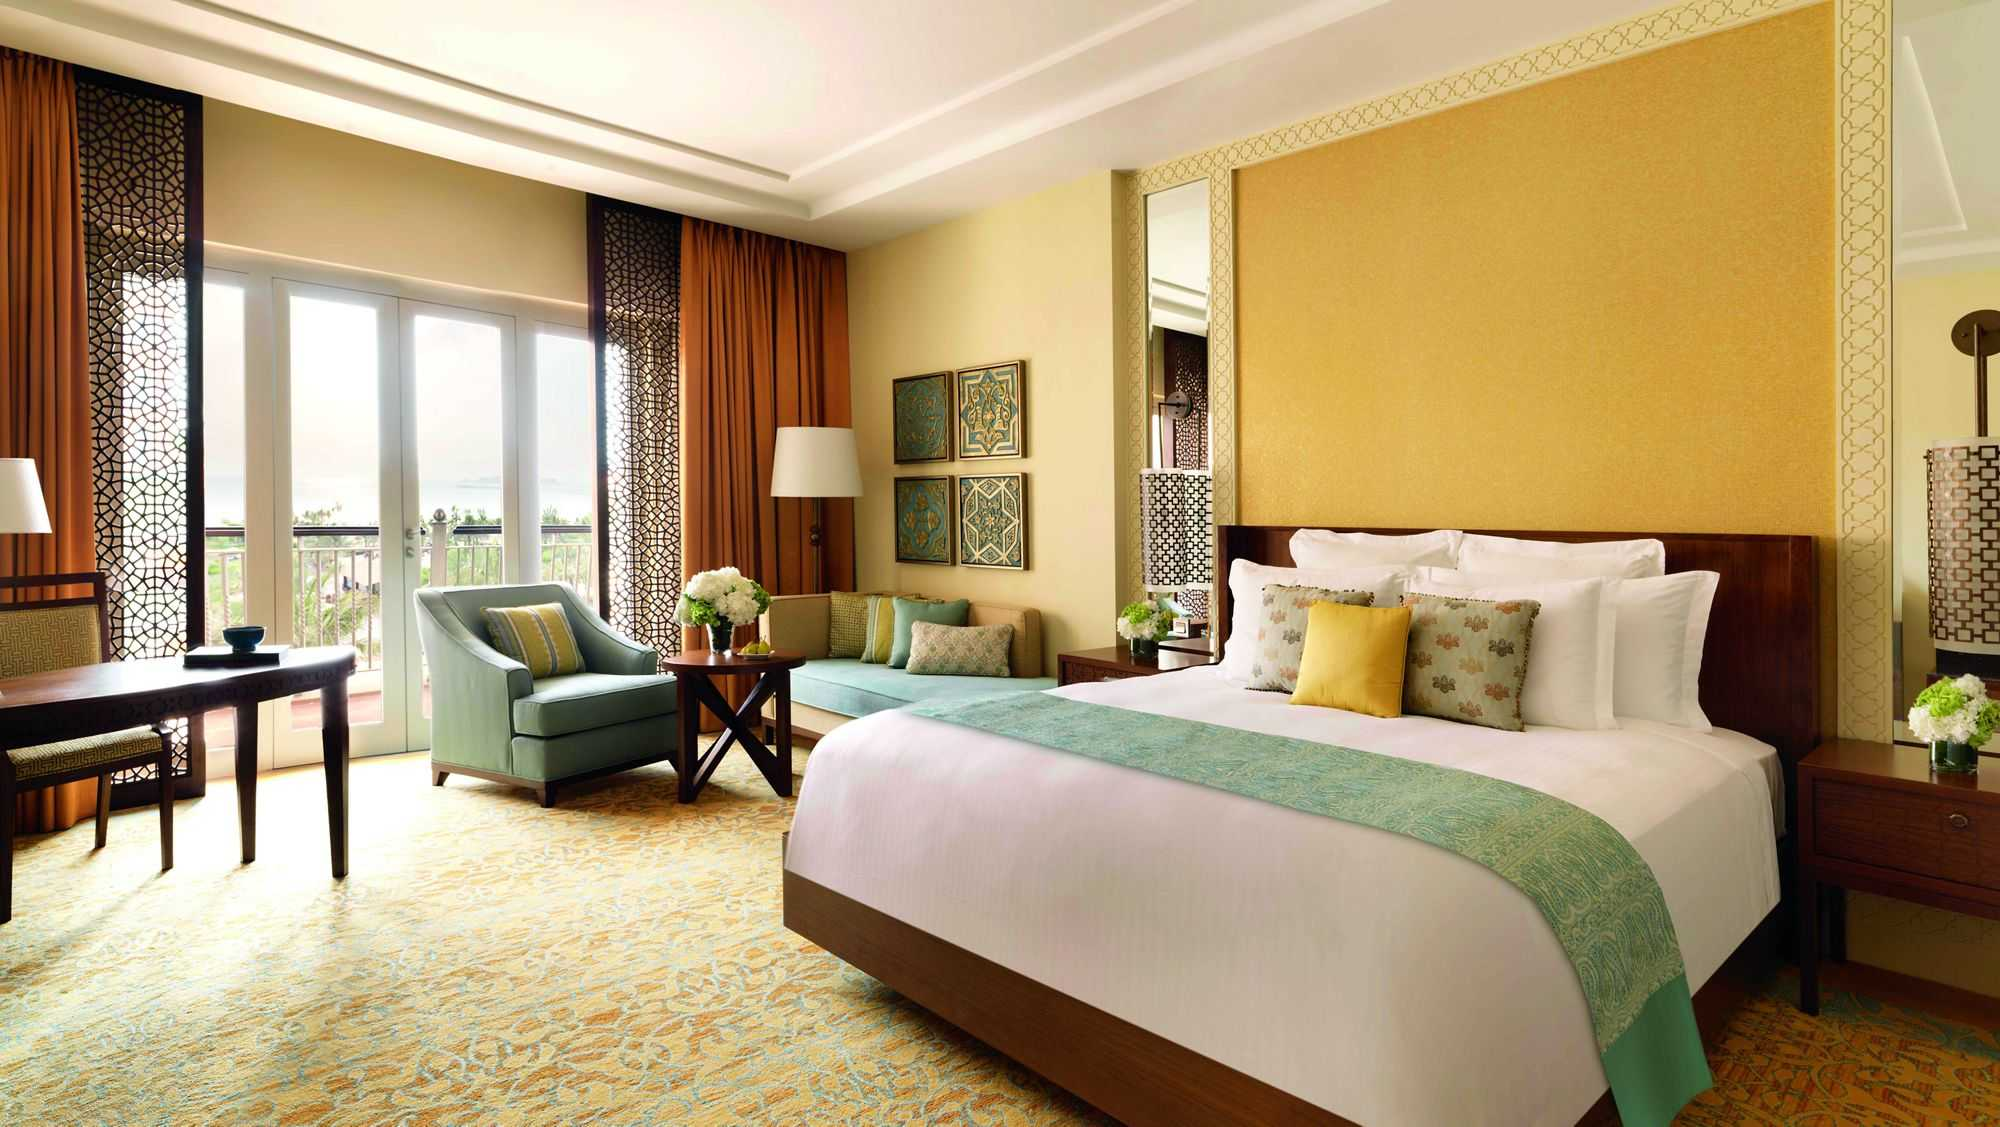 Accessible Marriott Ritz-Carlton Dubai King Bed